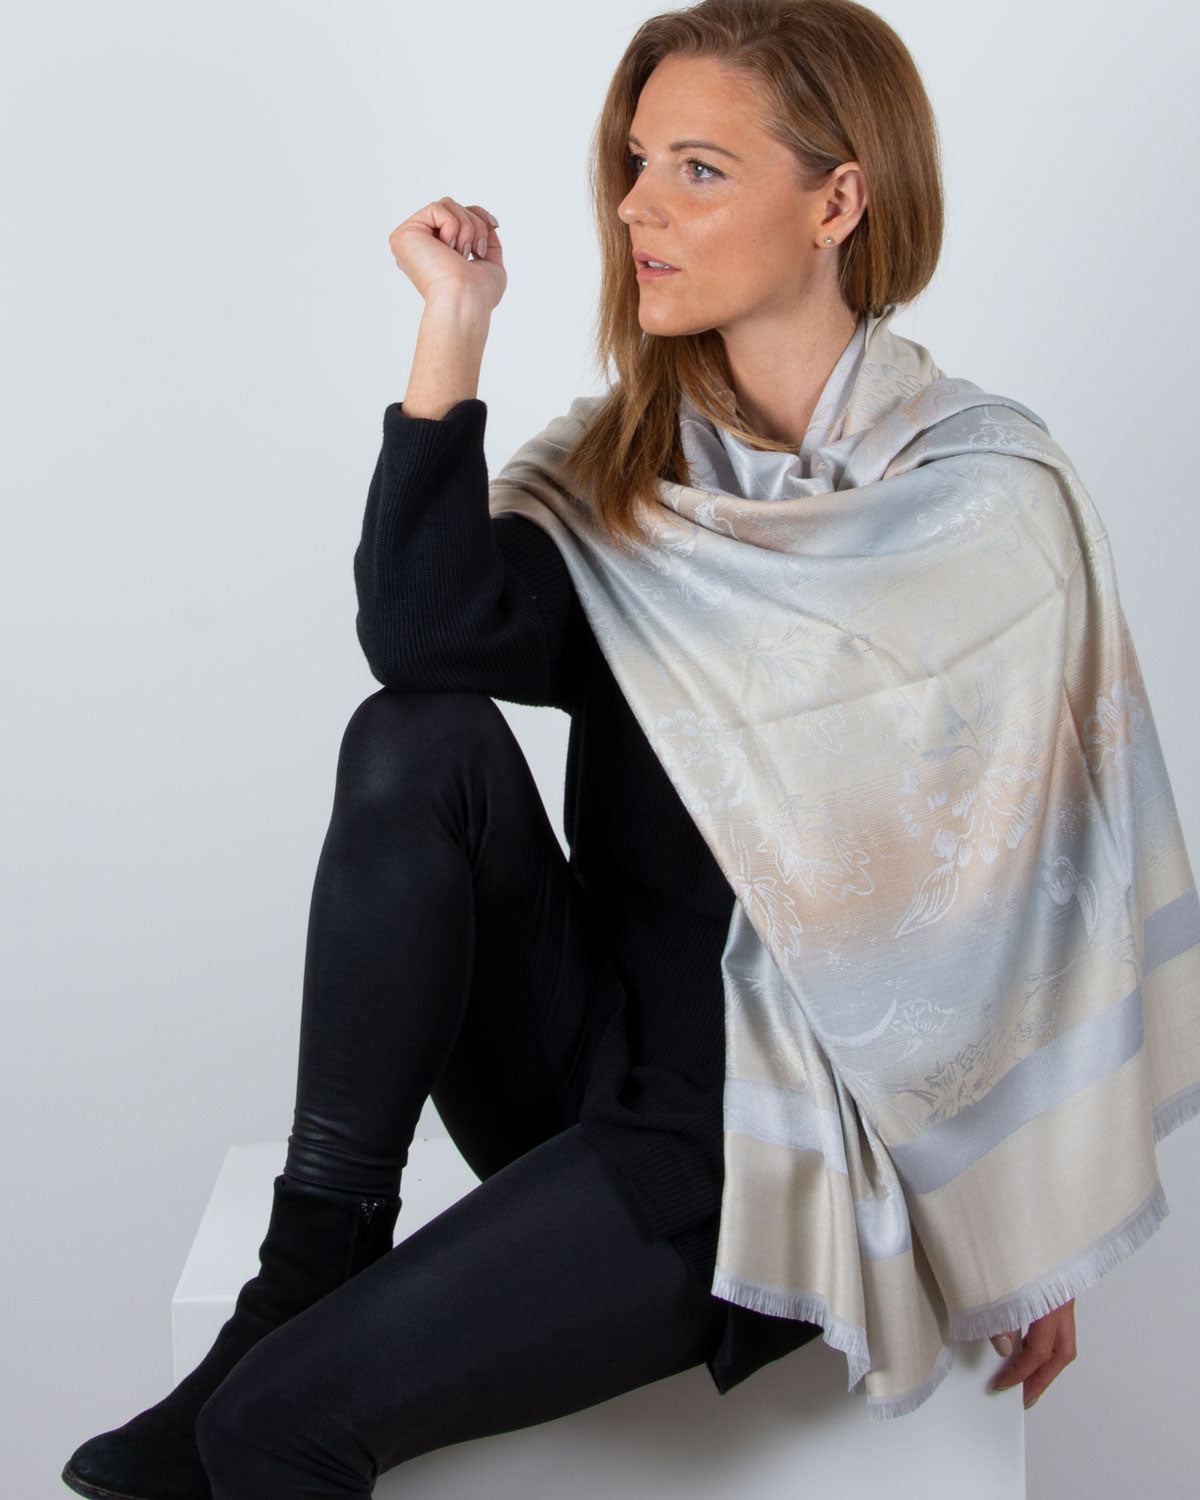 an image showing a silver patterned pashmina